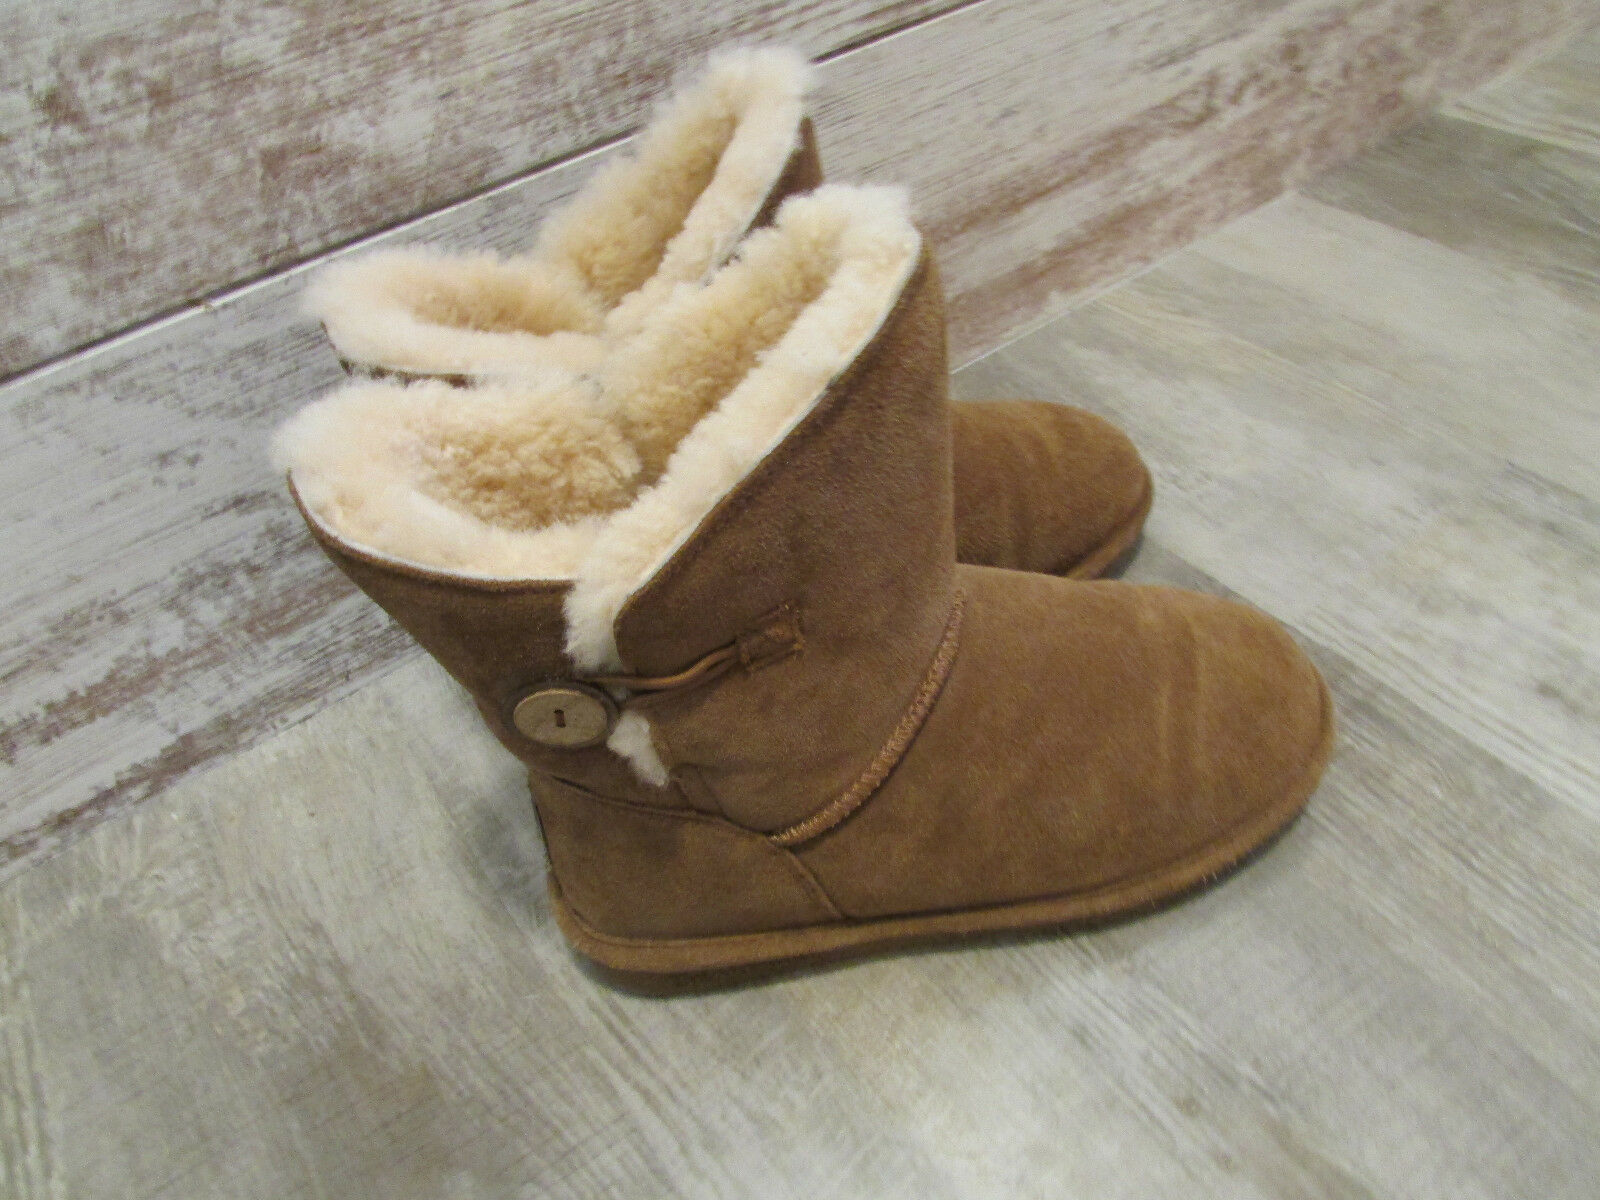 BEARPAW SHERPA LINED SUEDE LEATHER BOOTS WOMENS 7 COGNAC TAN